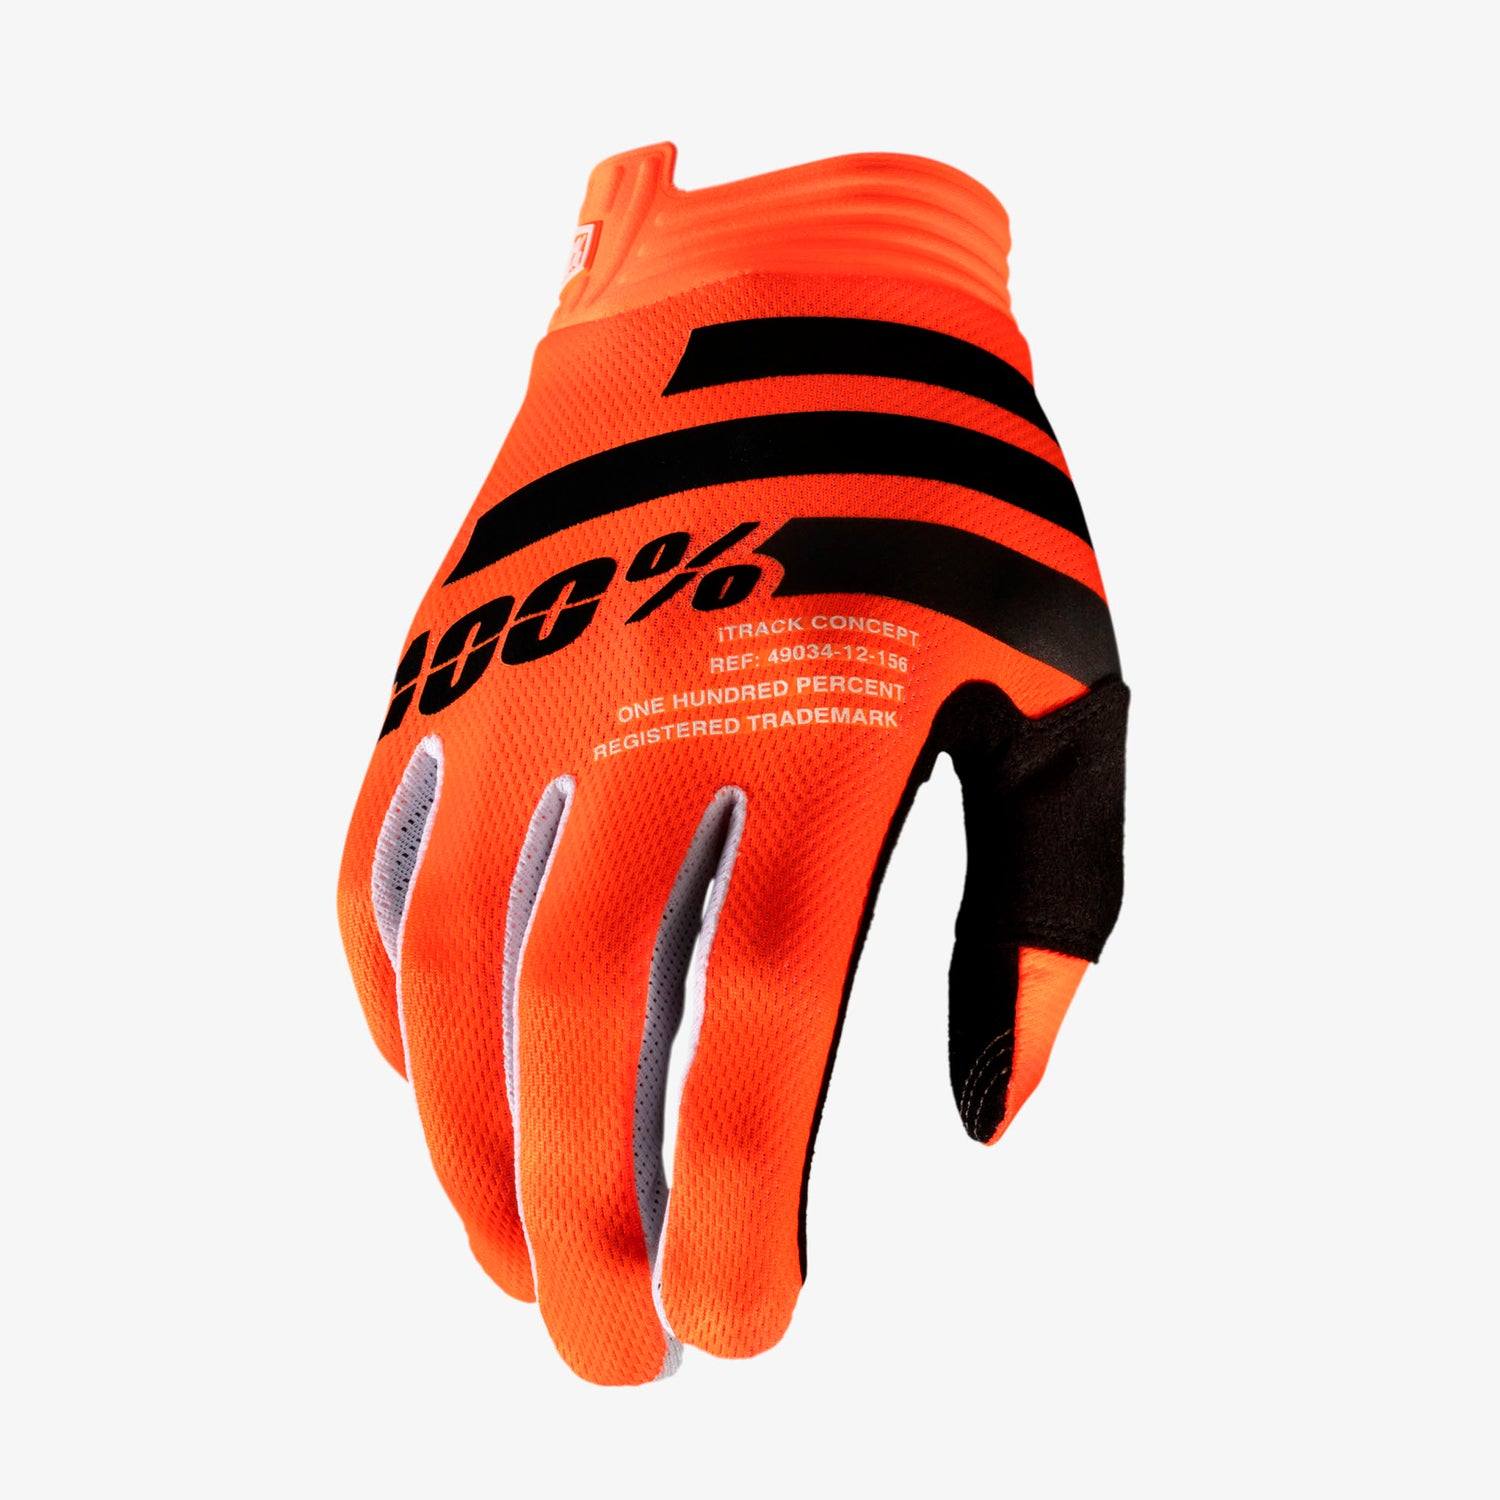 iTRACK Gloves Orange and Black